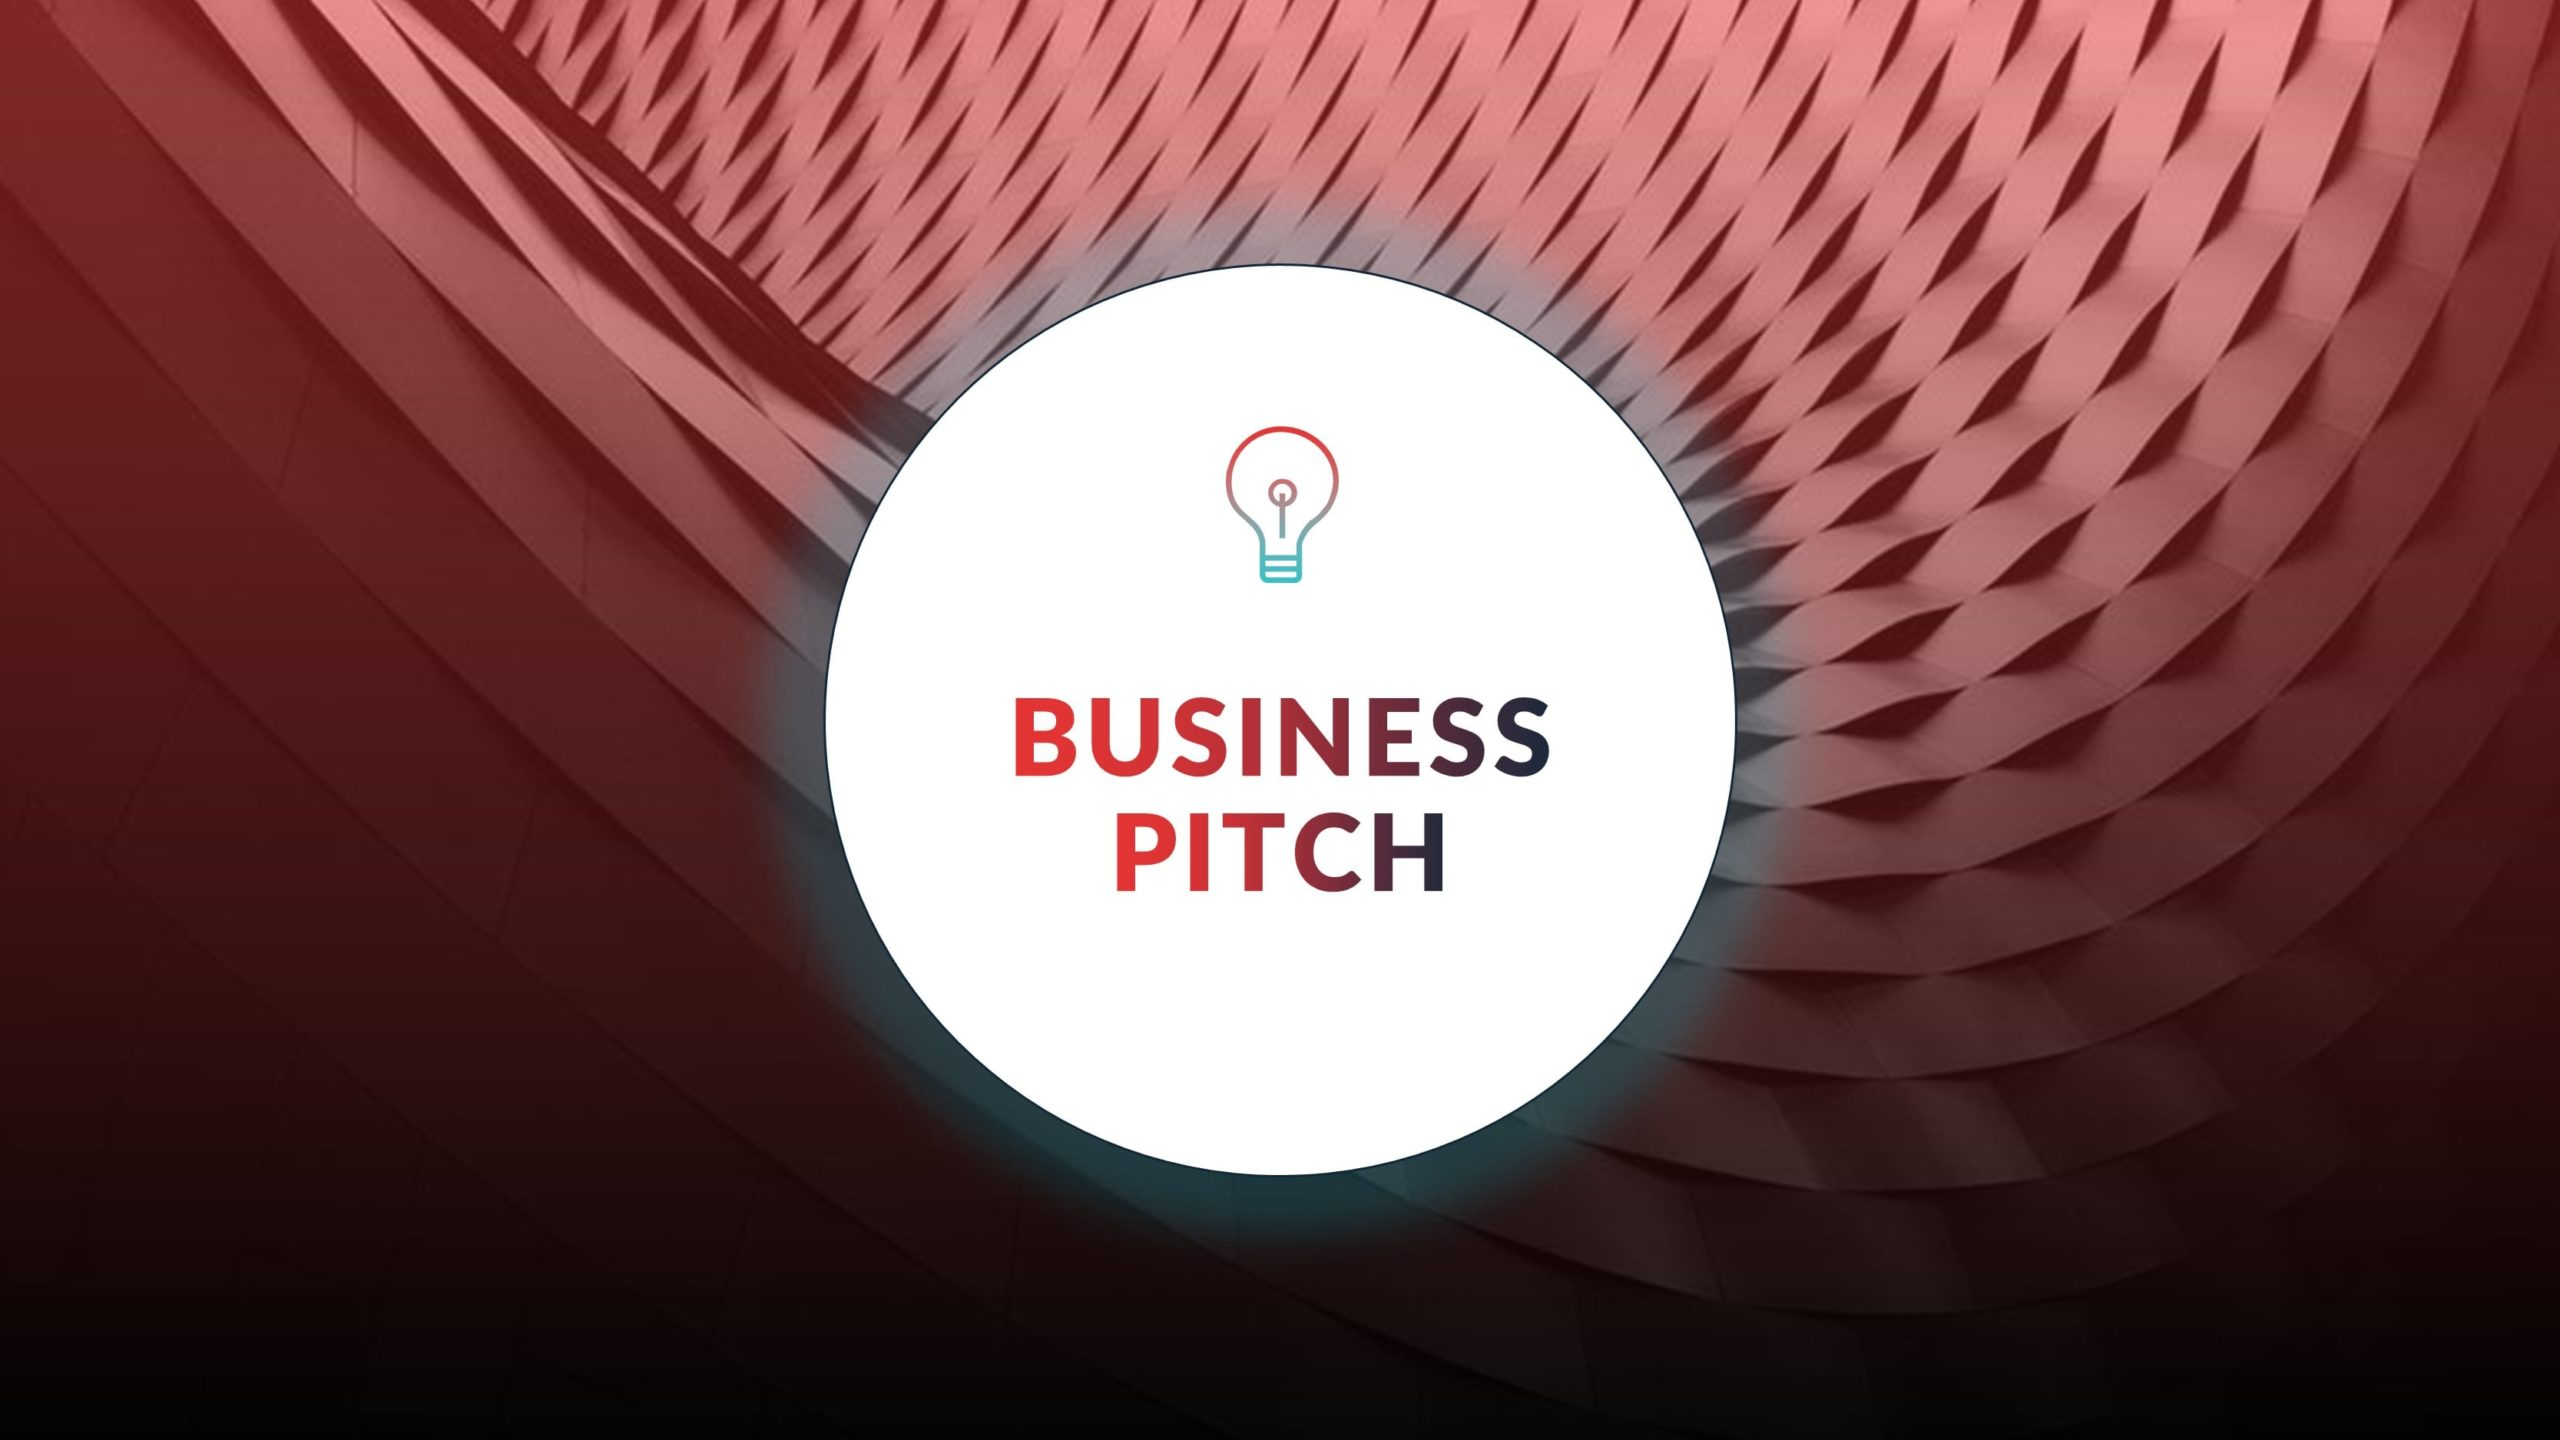 Free Red Business Pitch Presentation